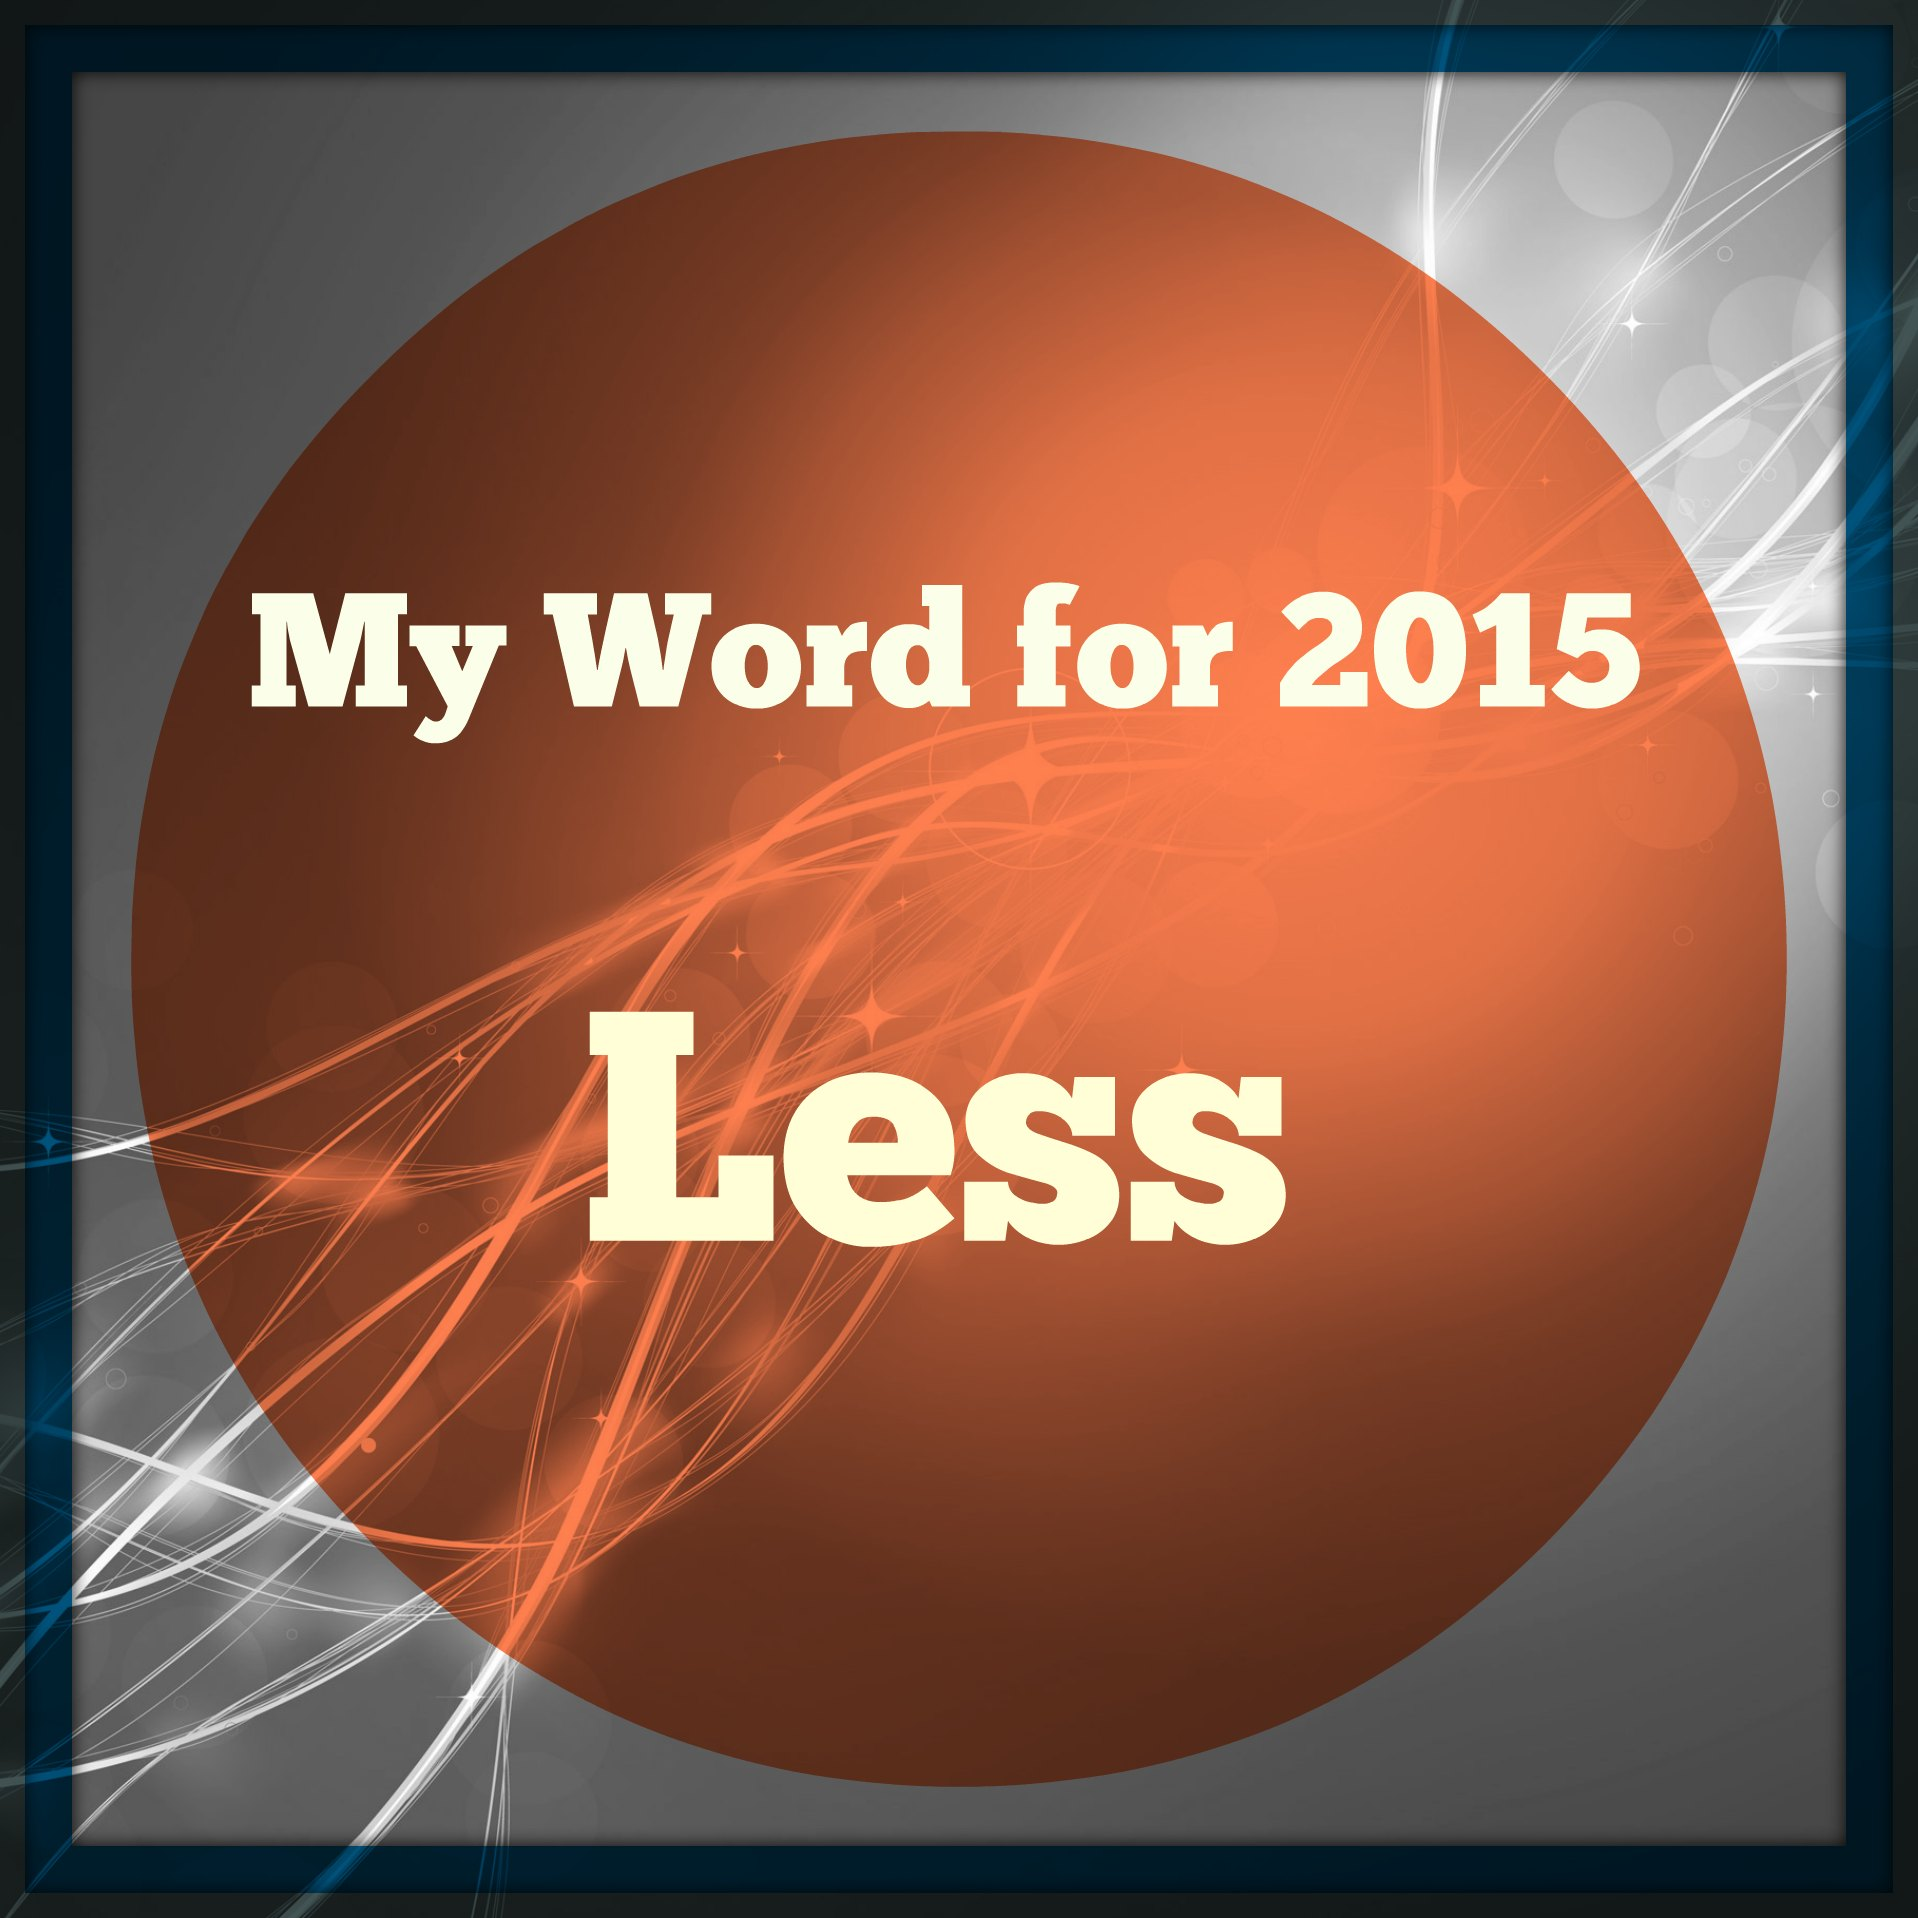 My Word for 2015